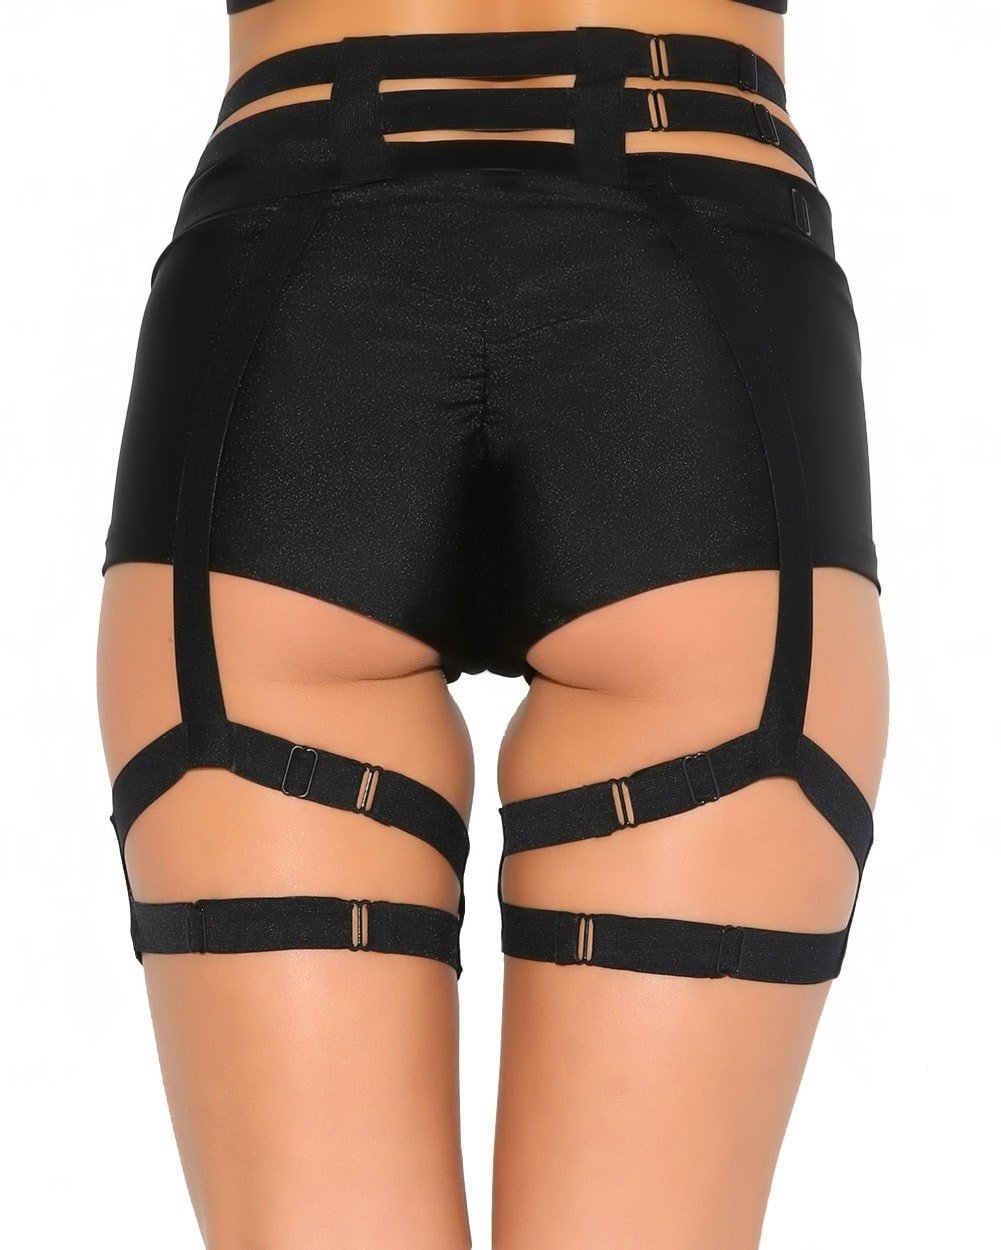 Studded Garter Belt Harness-back